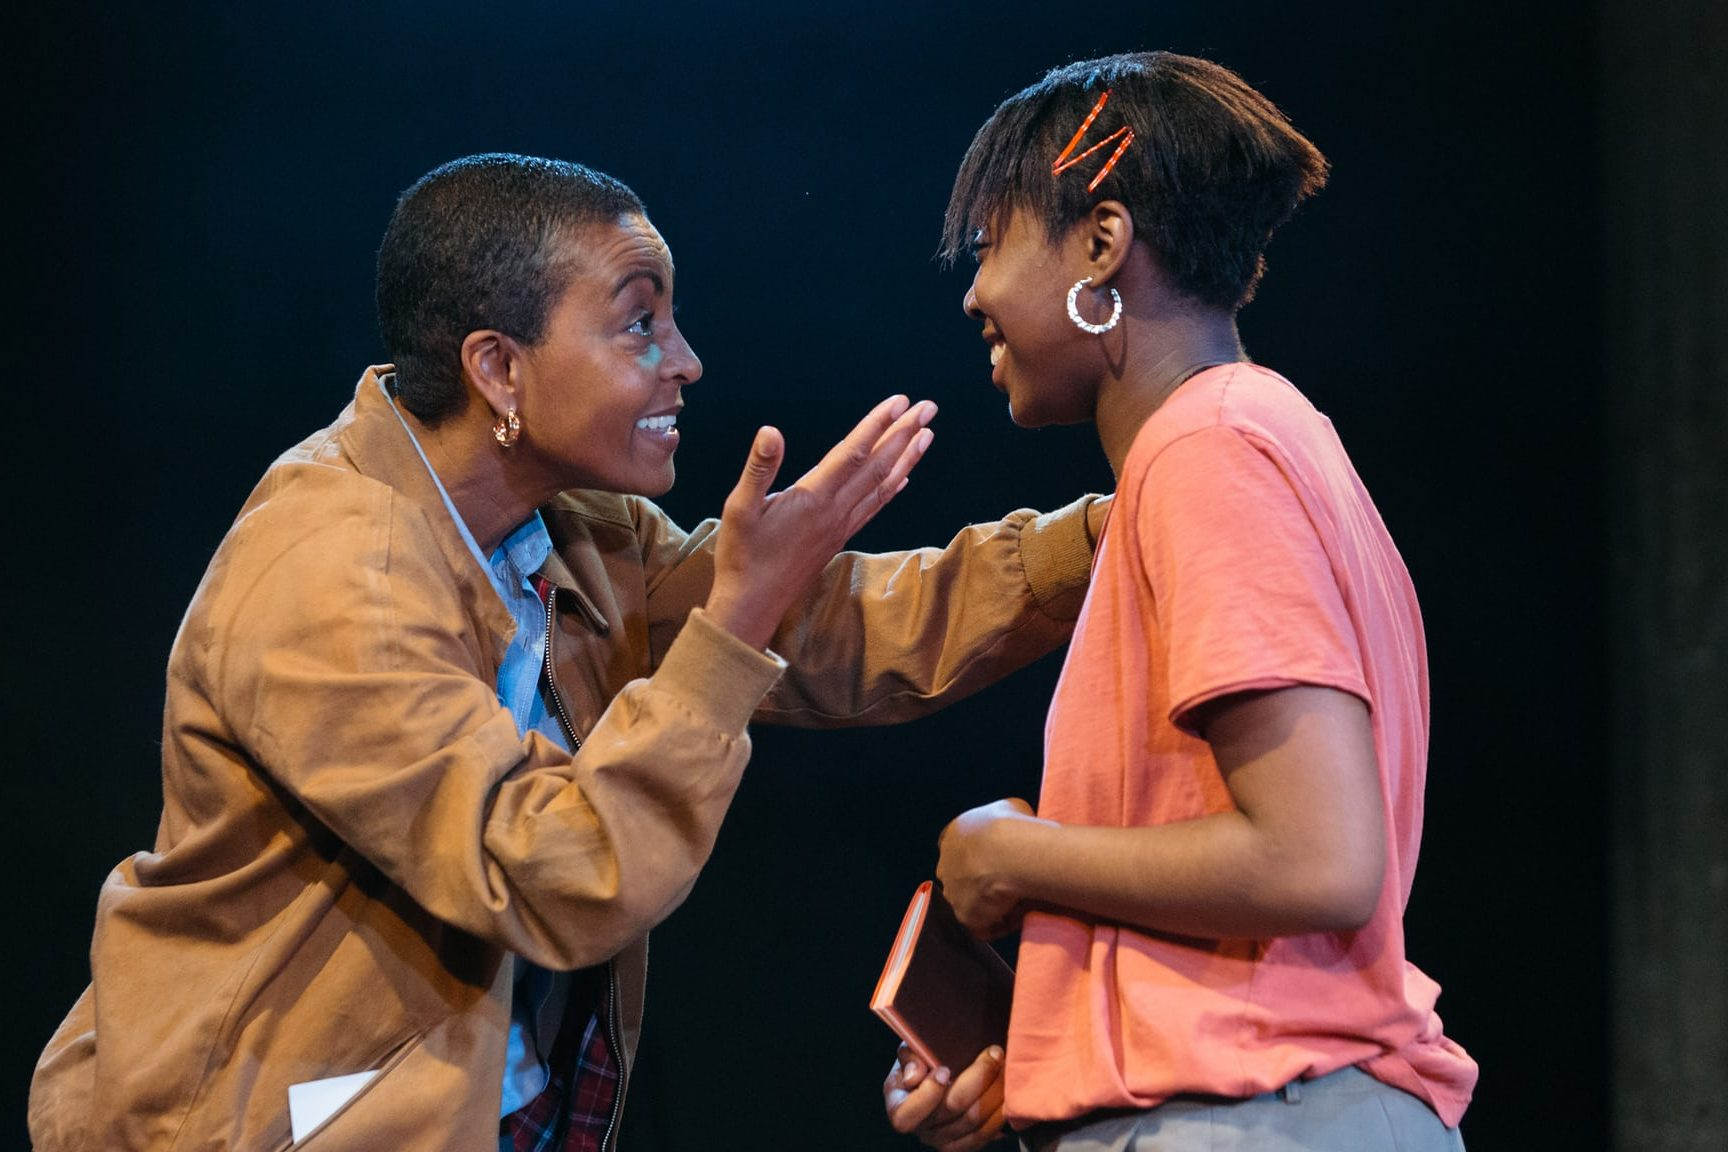 Leave Taking, Bush Theatre. Photo: Helen Murray.